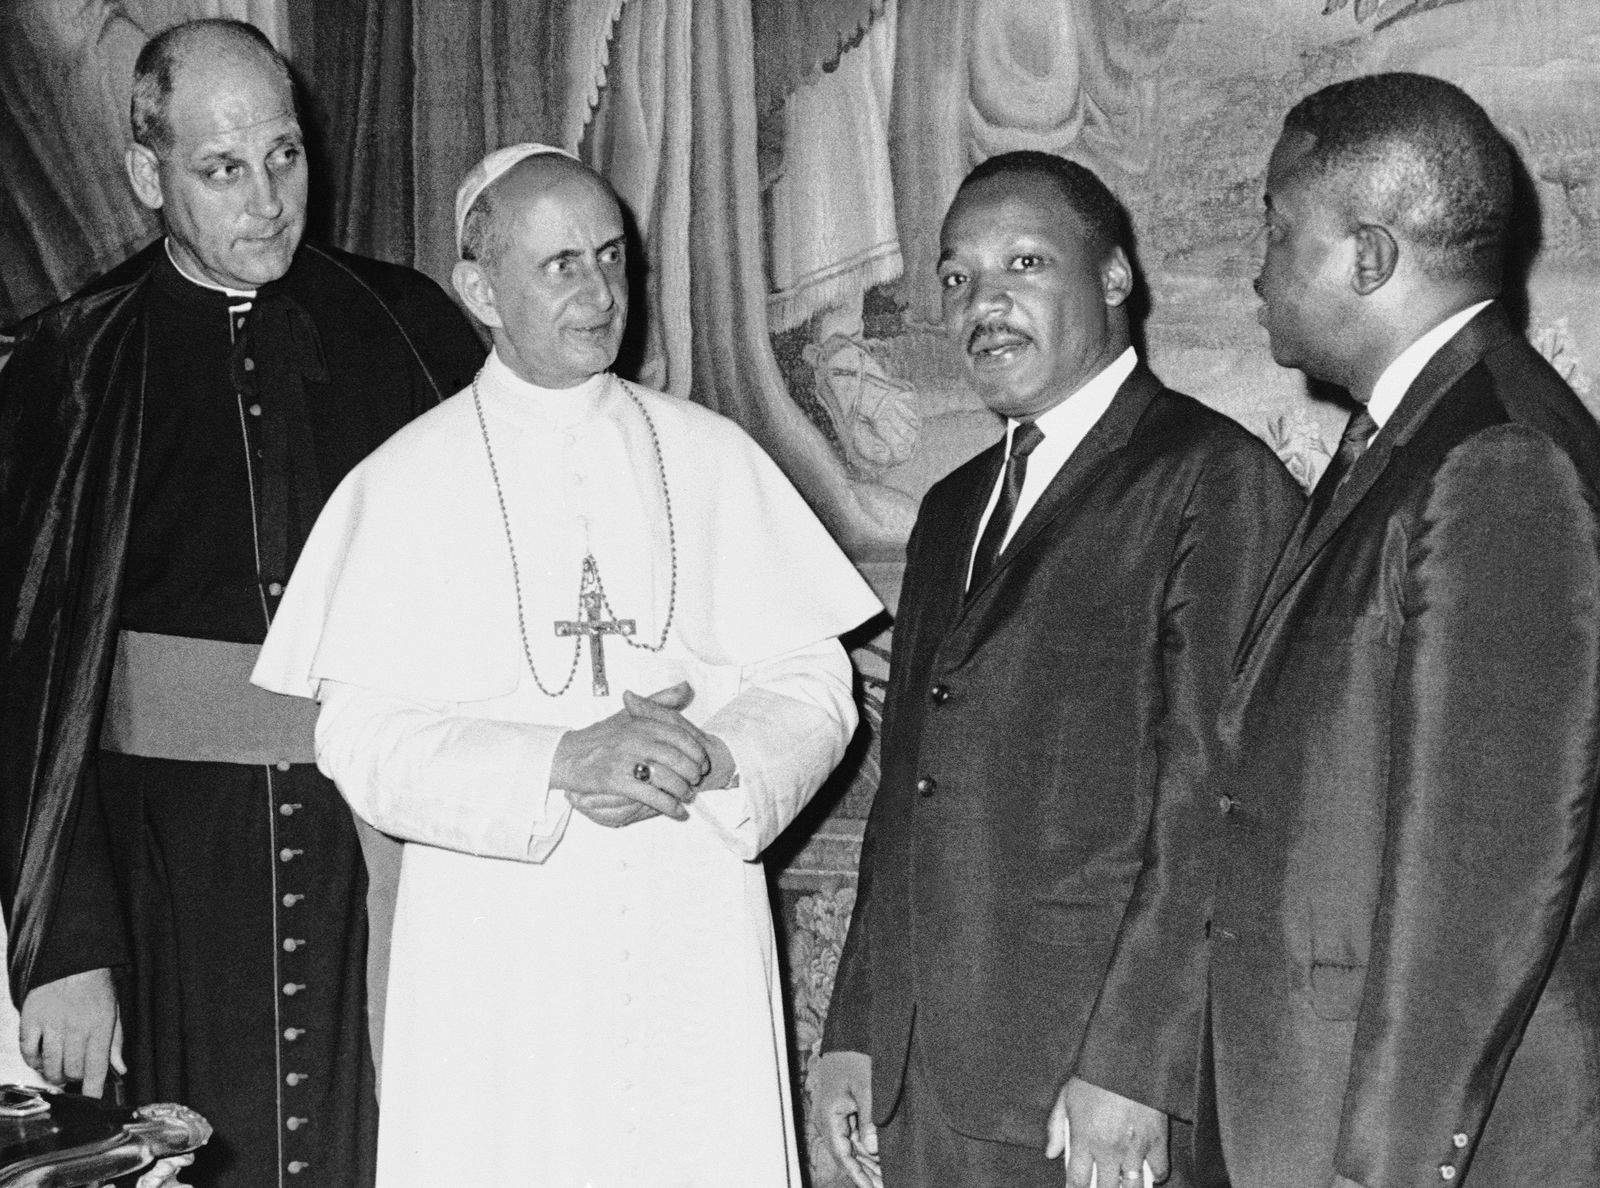 In his photo released by the Vatican, Pope Paul VI poses at the Vatican with American civil rights leader Dr. Martin Luther King, Jr., during a private audience, Sept. 18, 1964.  With the pontiff and King are Msgr. Paolo Marcinkus of Chicago, who acted as interpreter, and with King is his aide, Dr. Ralph Abernathy, right. (AP Photo/Vatican Photo)